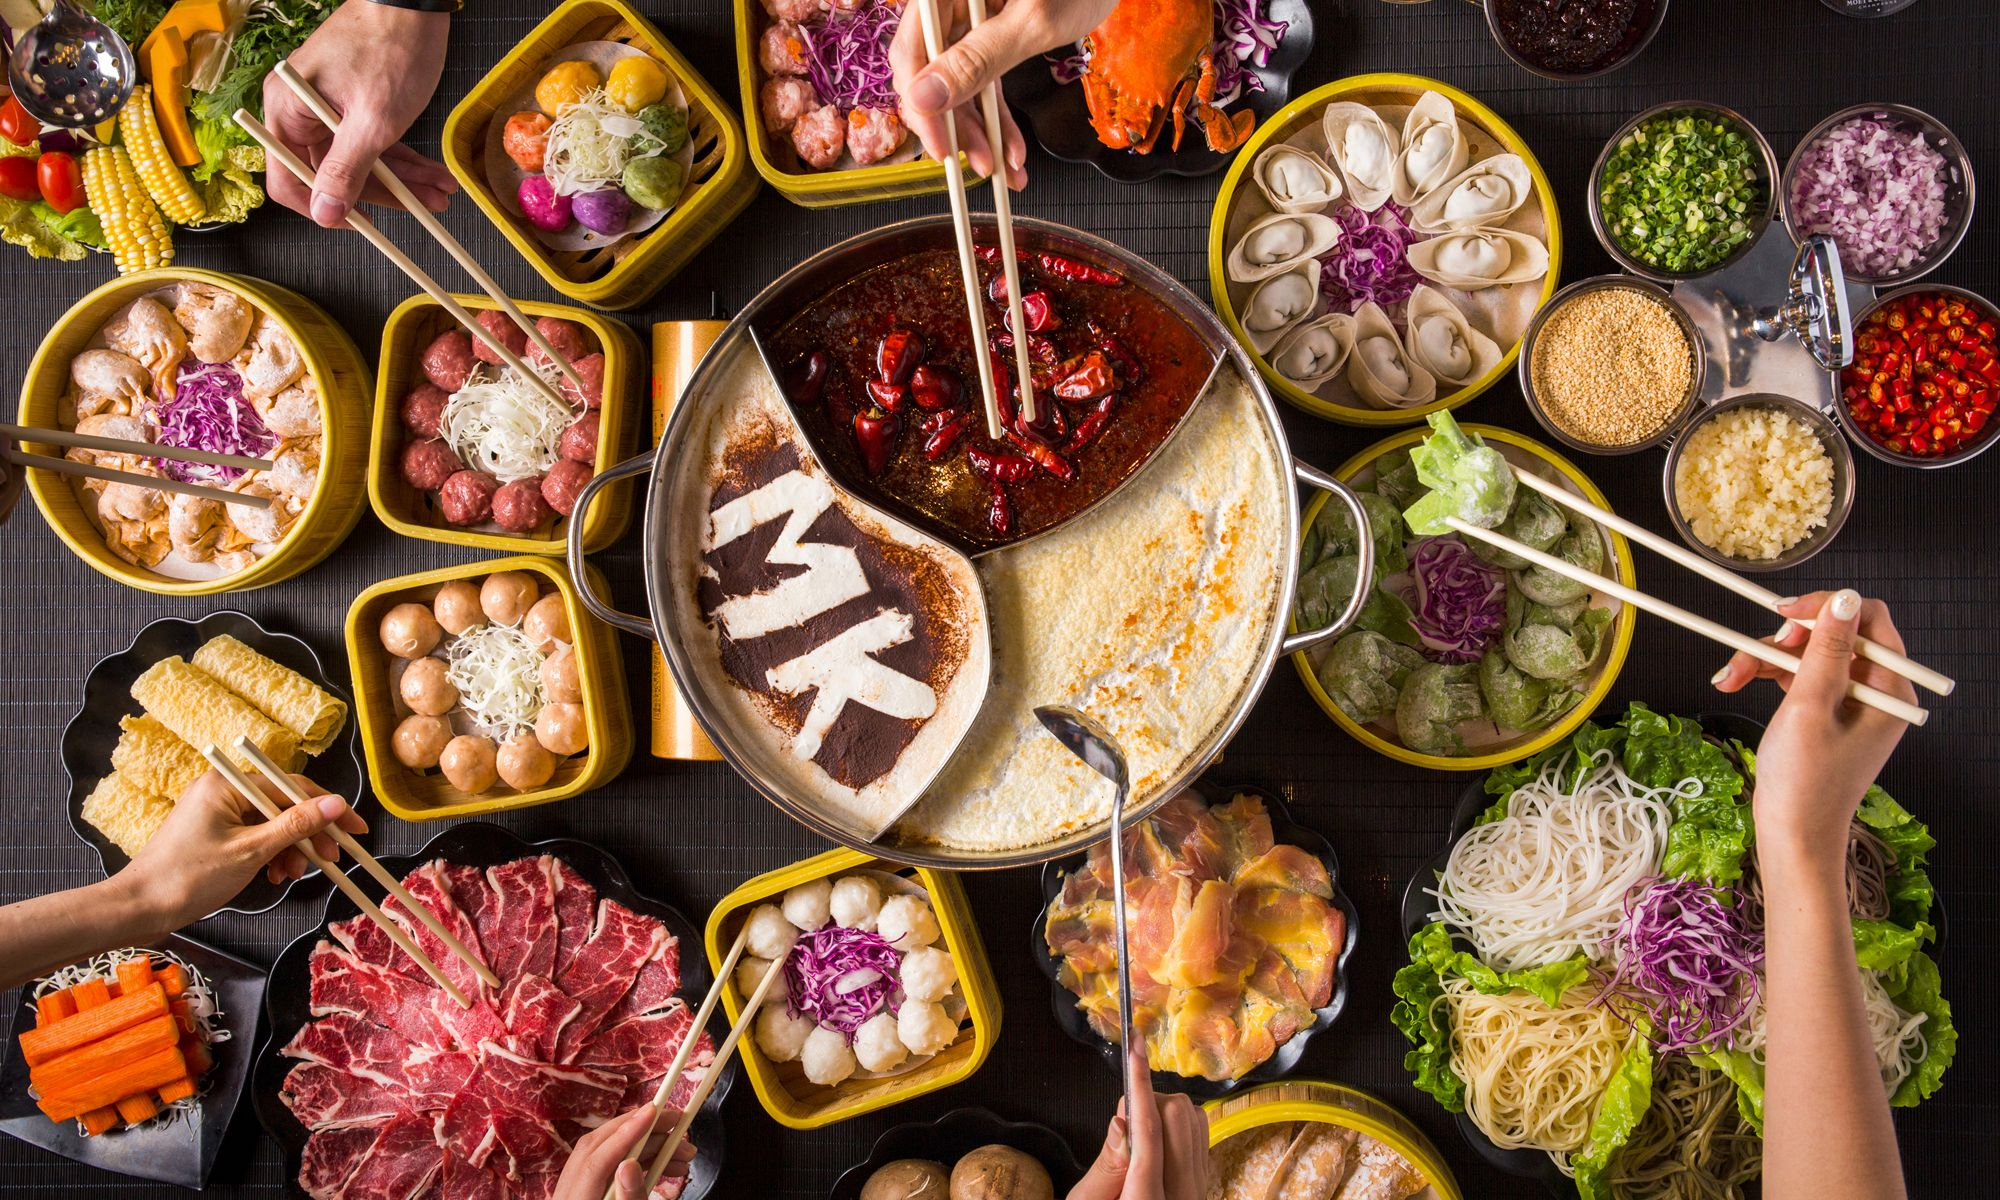 Megan's Kitchen Welcomes Year 2019 With Exclusive Hotpot Menu